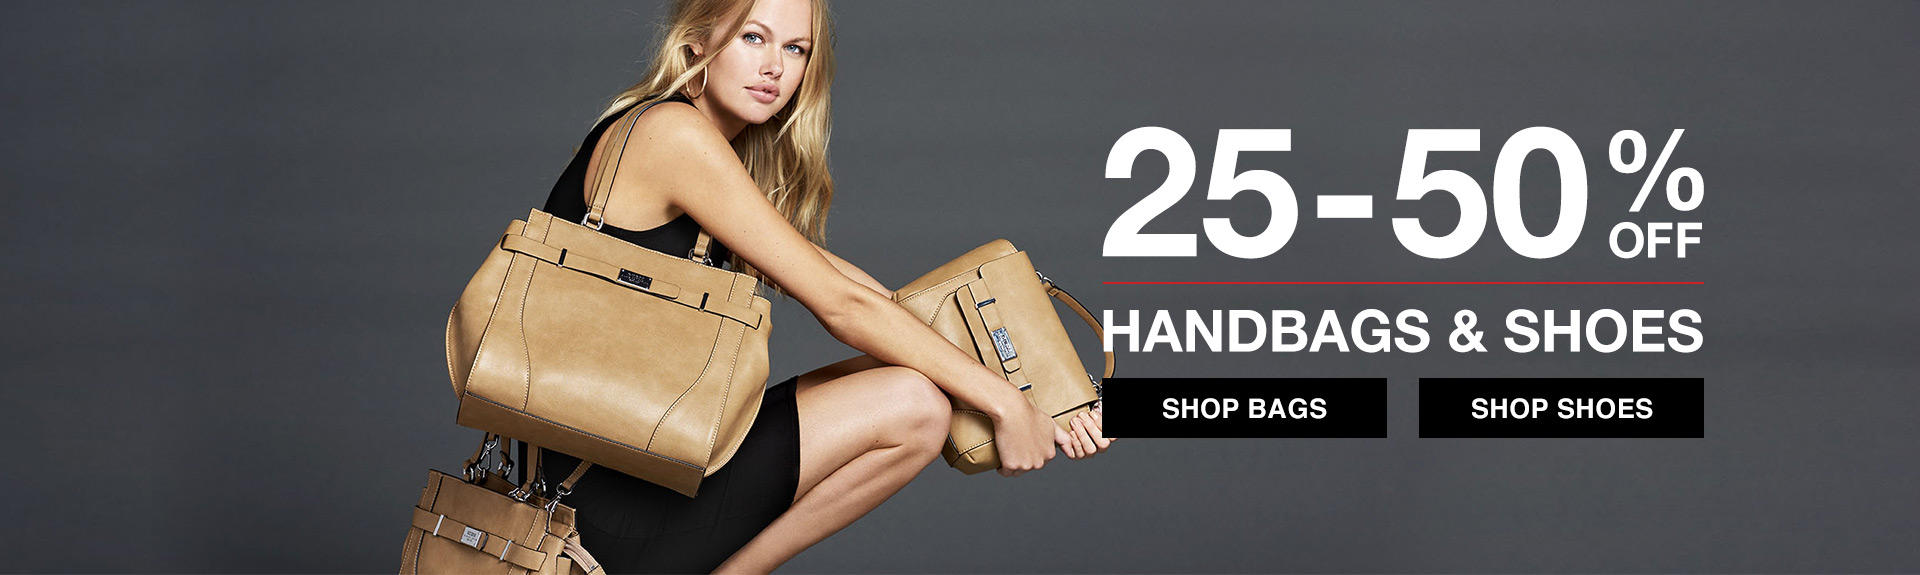 Shop handbags and shoes